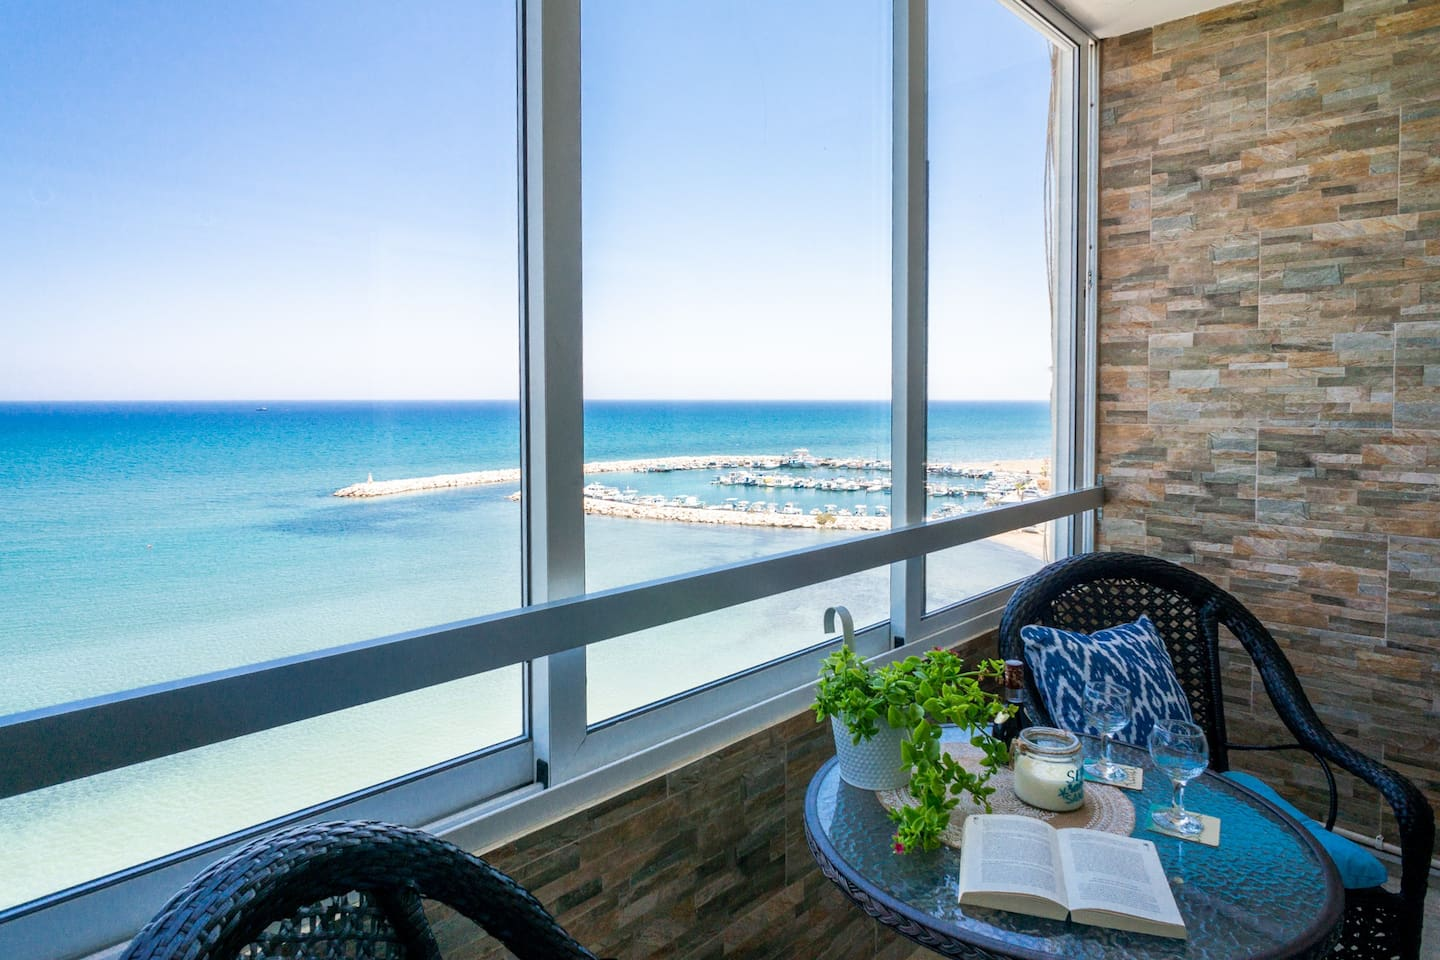 Top Floor Apartment with stunning Sea Views from all rooms